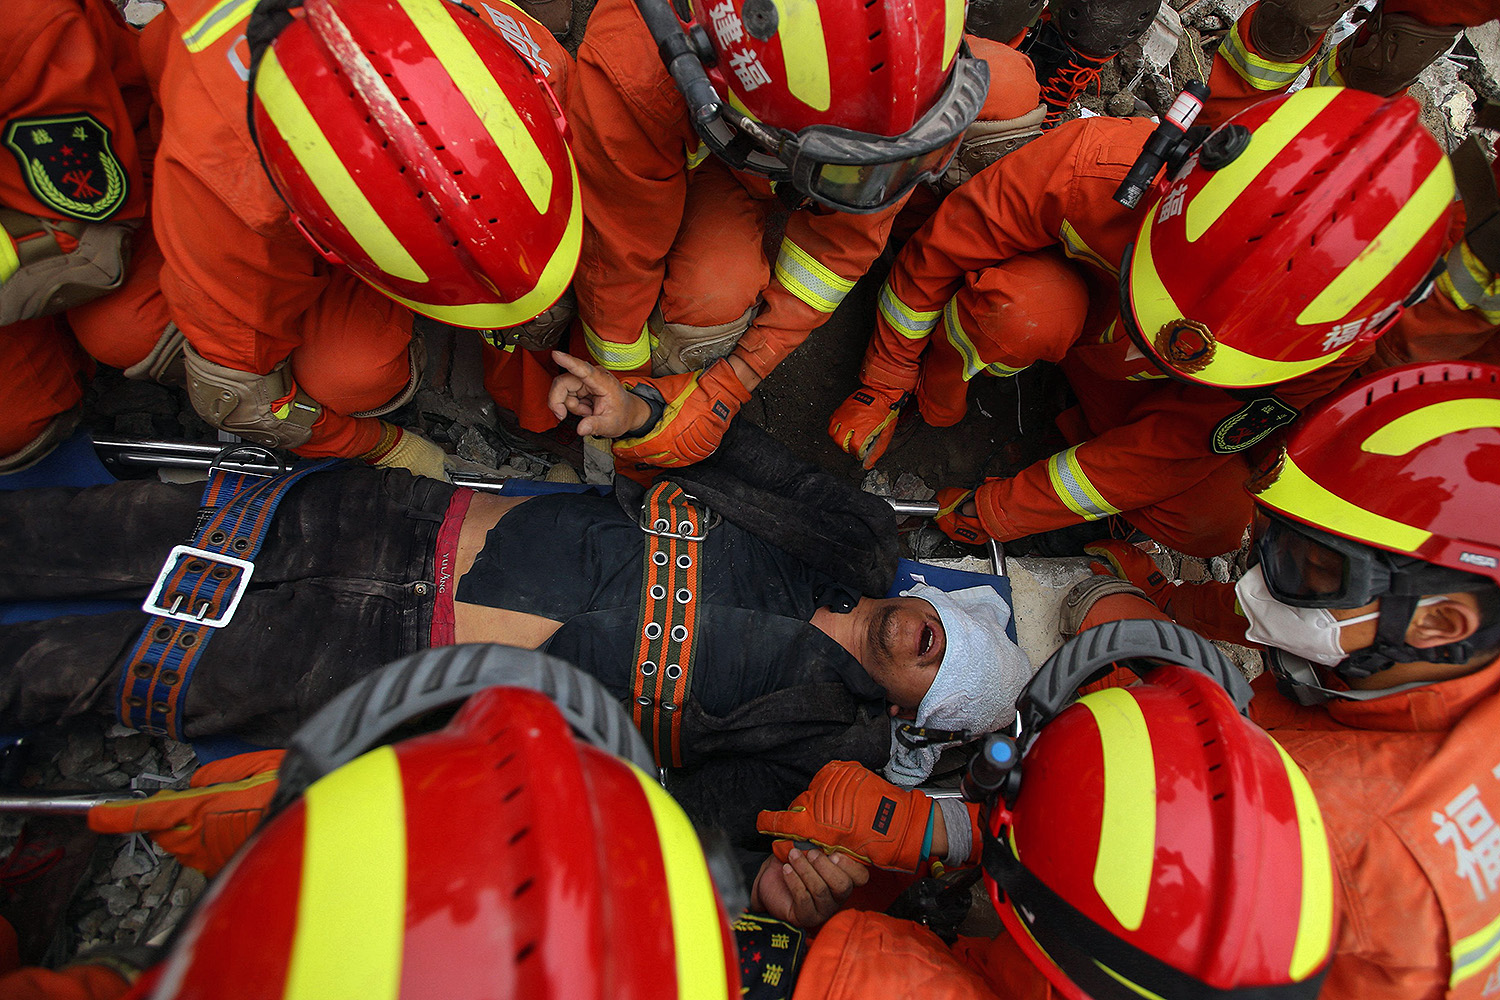 A man is rescued from the rubble of a collapsed hotel in Quanzhou, southeastern China, on March 8. The hotel had been a quarantine site for people exposed to the coronavirus. STR/AFP via Getty Images